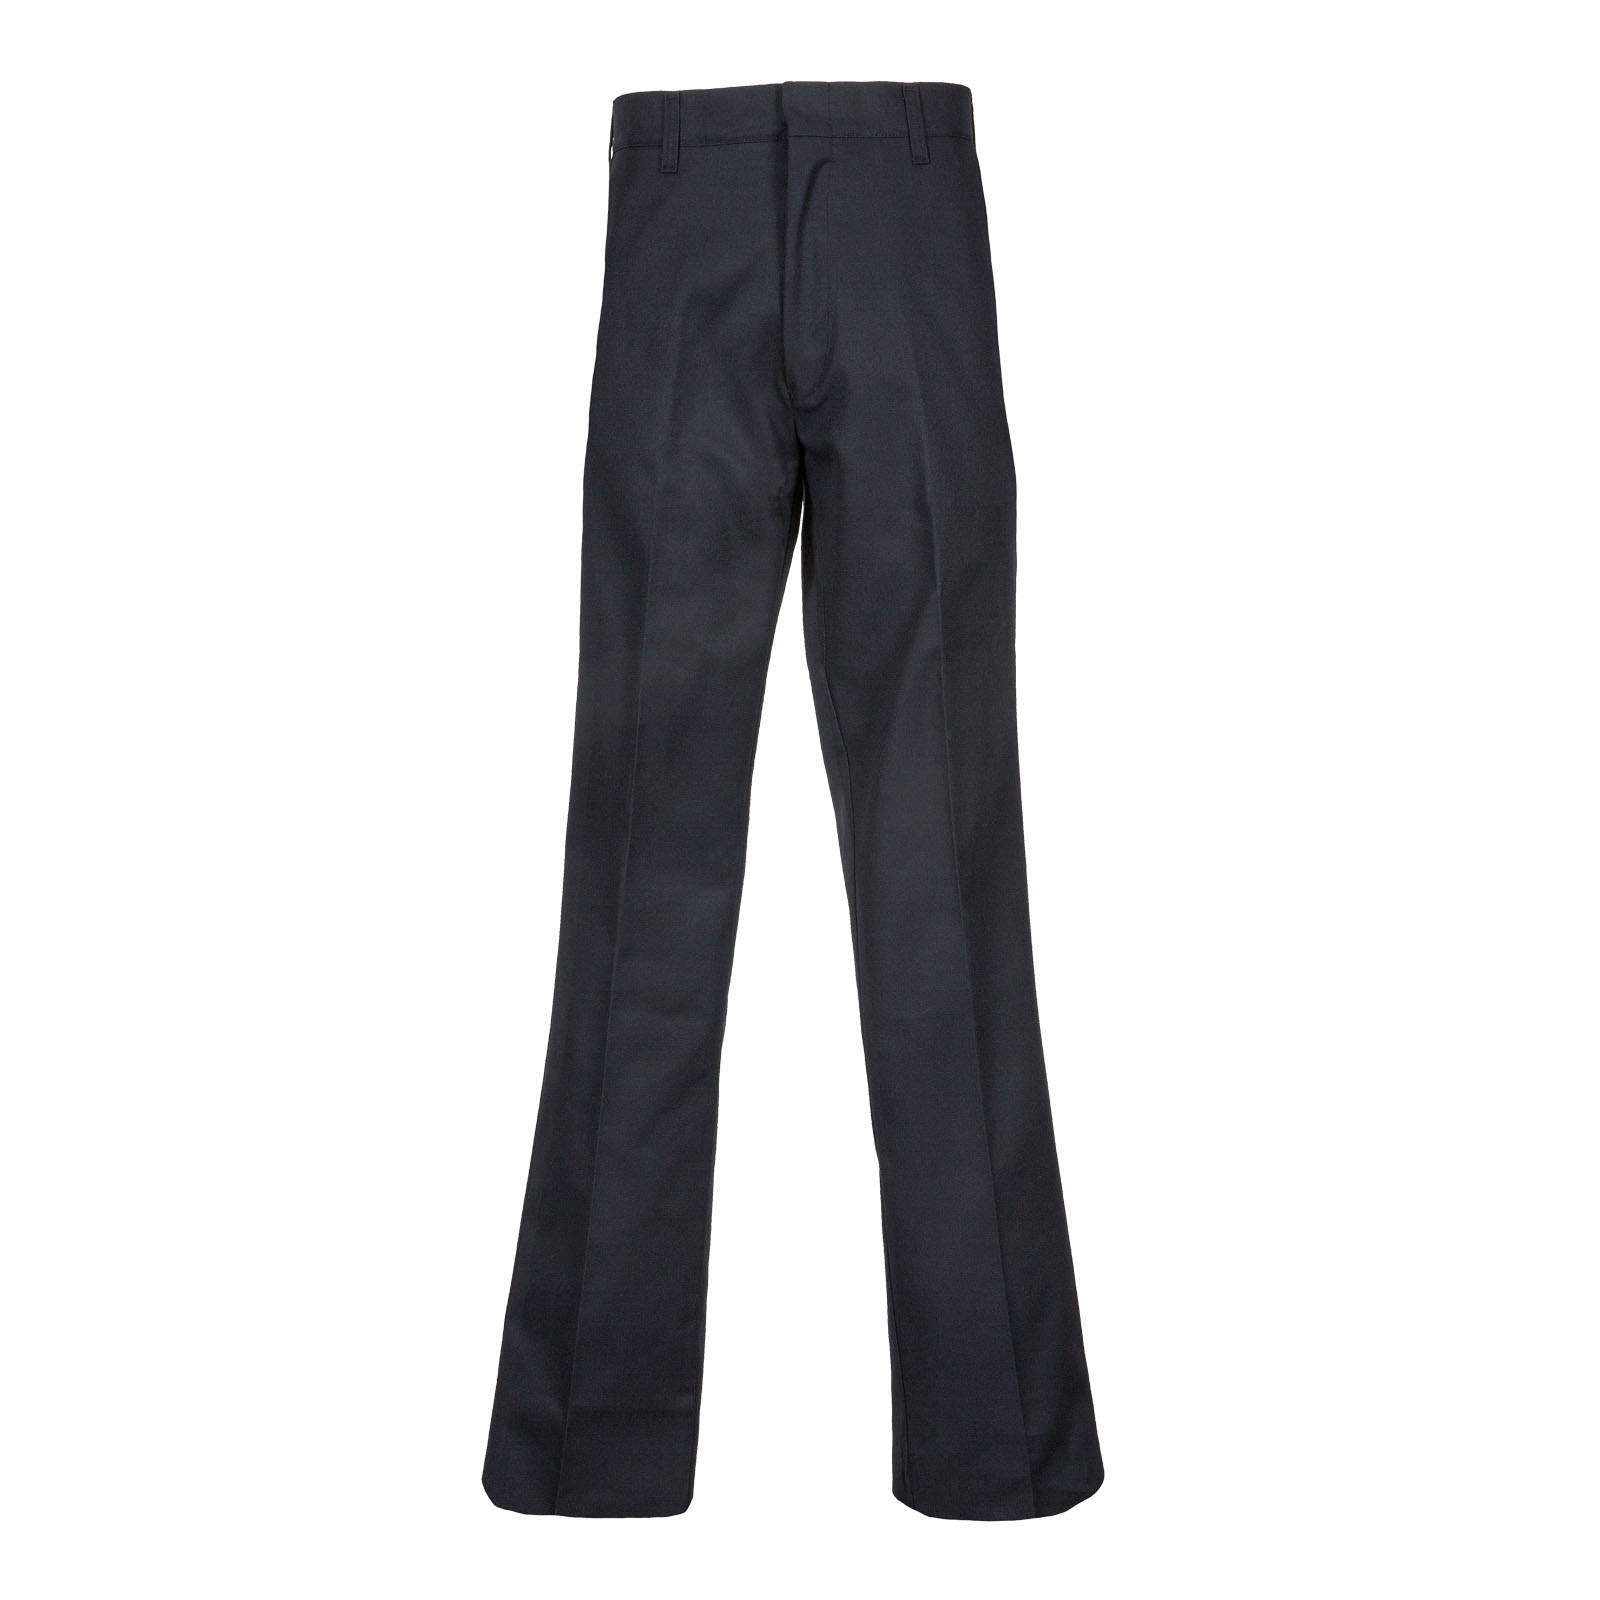 65/35 Comfort Twill Work Horse Uniform Pant-TOPPS